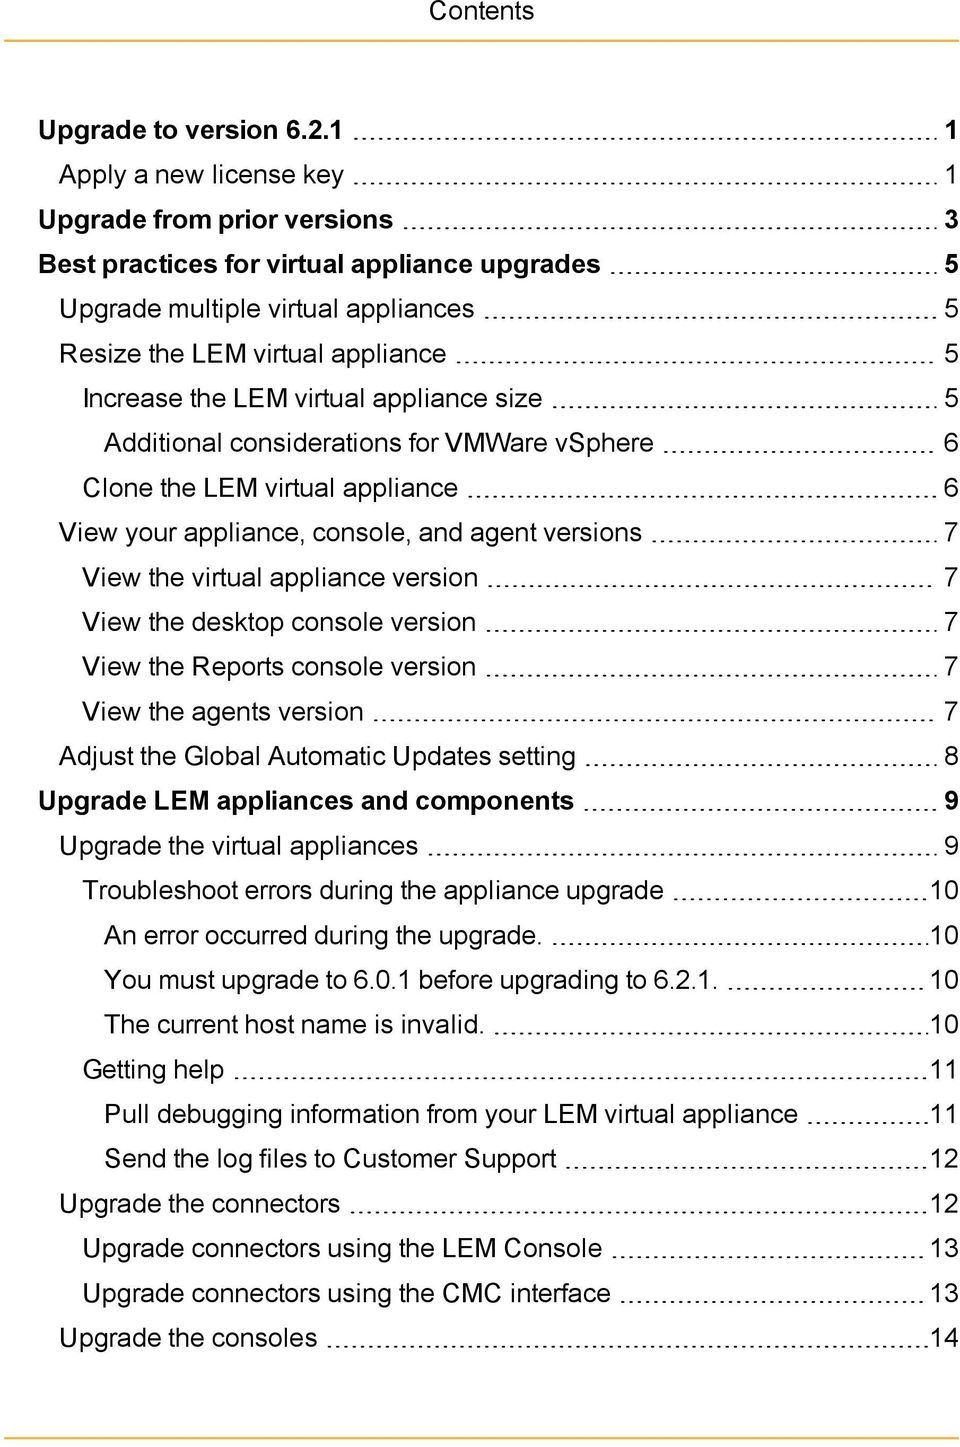 virtual appliance size 5 Additional considerations for VMWare vsphere 6 Clone the LEM virtual appliance 6 View your appliance, console, and agent versions 7 View the virtual appliance version 7 View